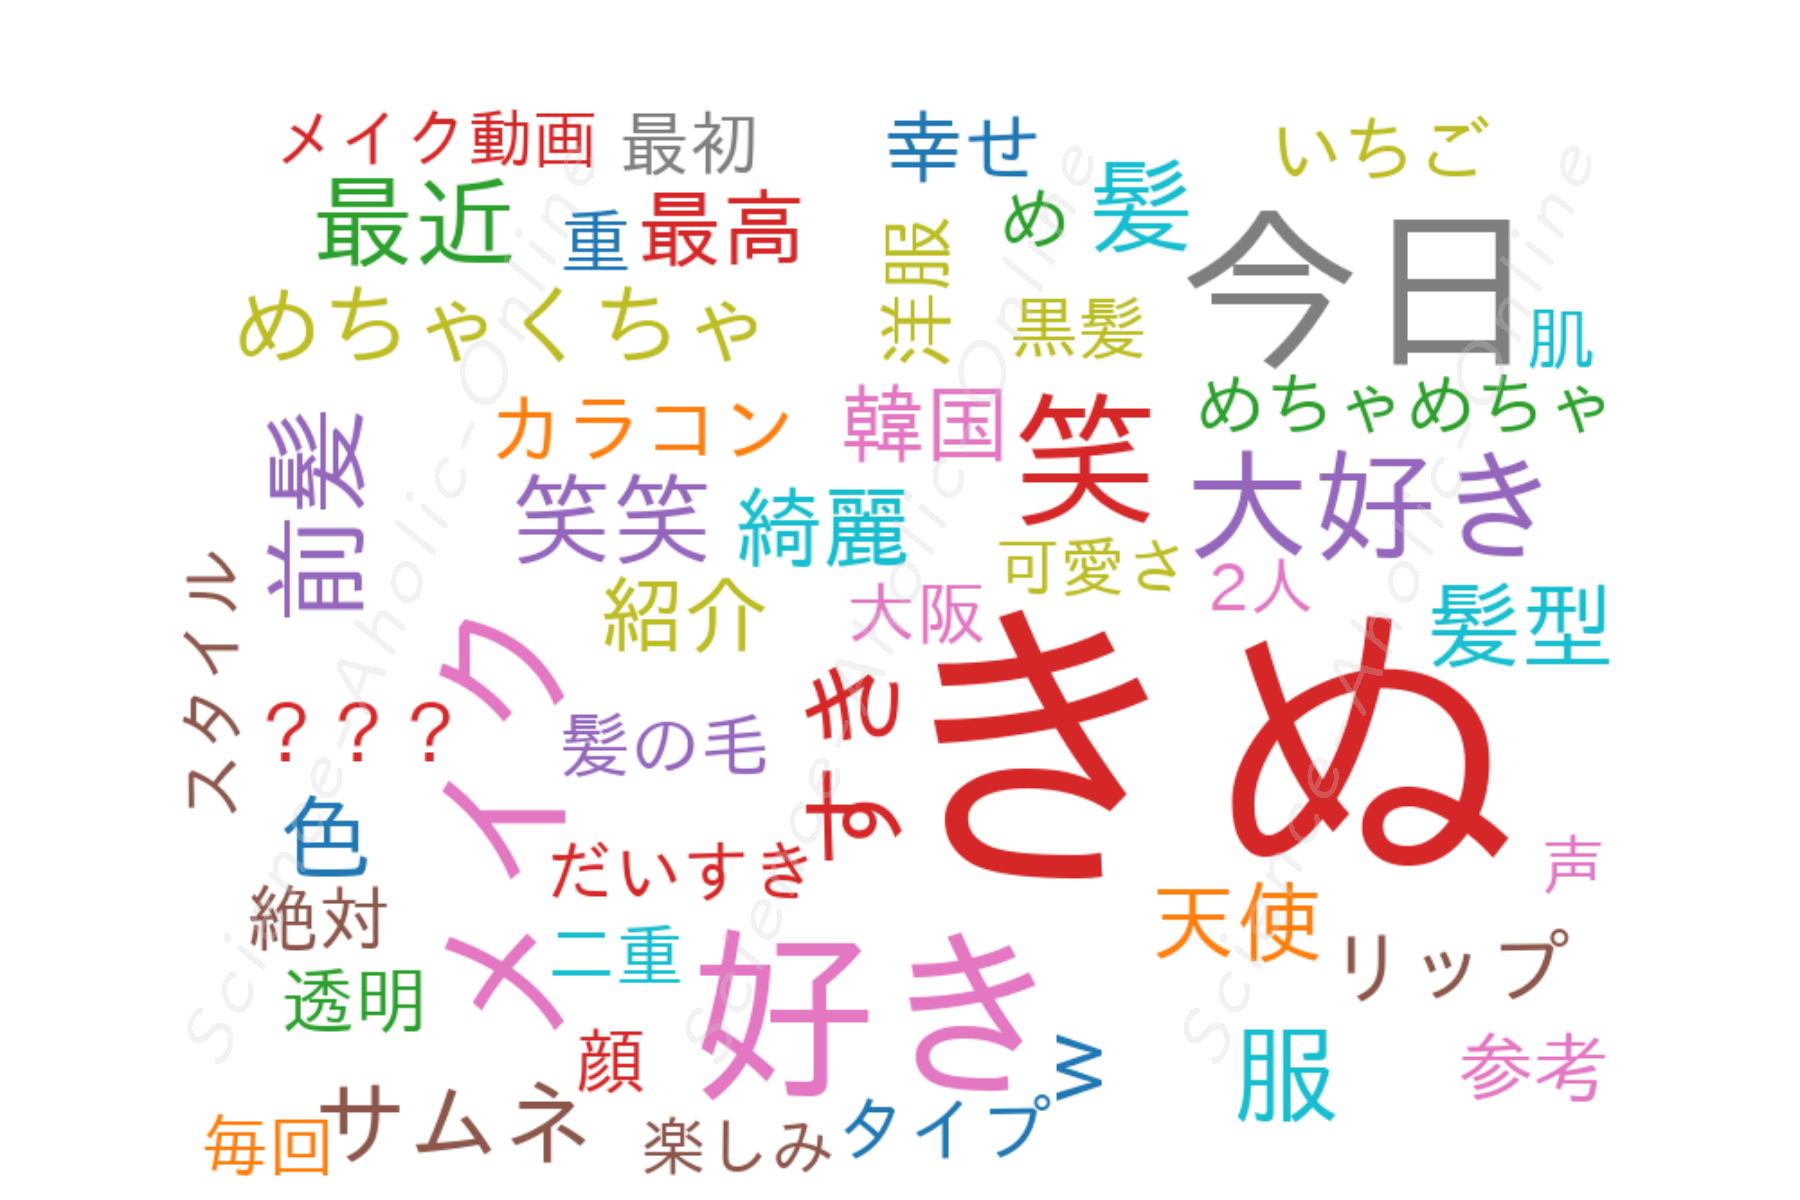 https://science-aholic-online.com/wp-content/uploads/2020/08/wordcloud_きぬちゃんねる.png